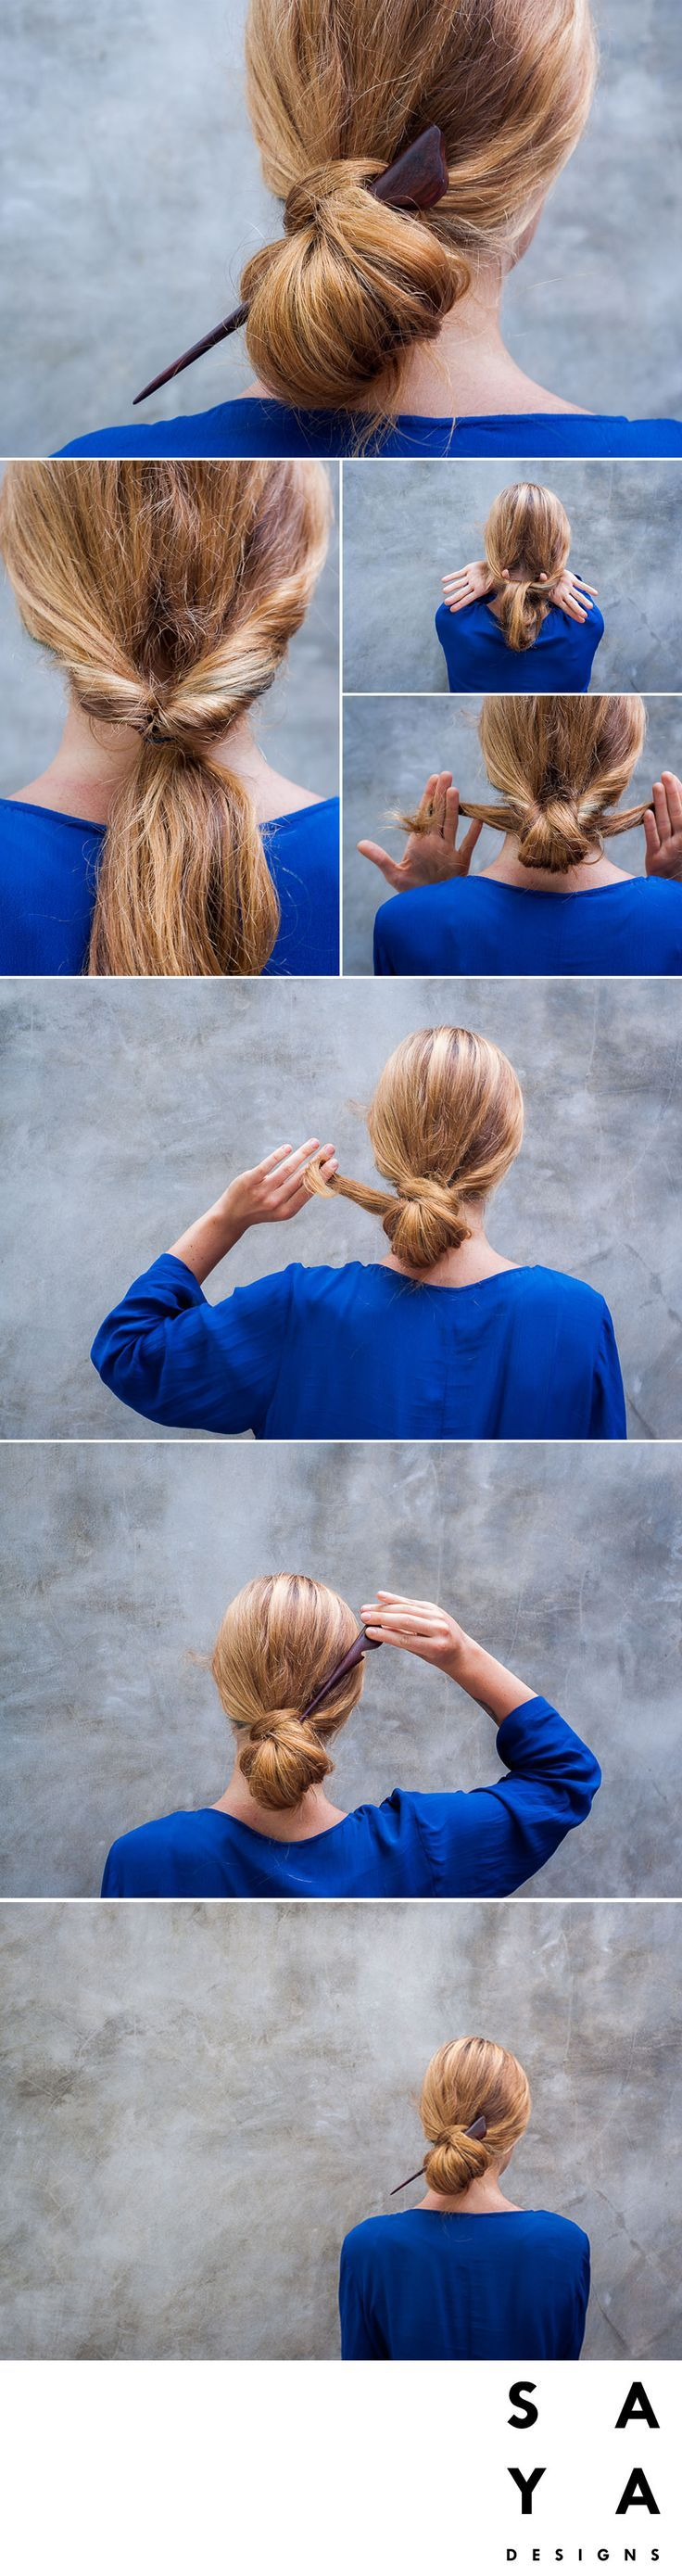 """How to do a """"Wrapped Bun"""".  Put your hair into a low pony tail from behind and loop it into iteself. Depending on the length of your hair, do this a few times until you are left with two small ends on either side. Plait your hair centred from behind and fold it into itself into a low bun. Take the hairpin and place it through the bun. You want to make sure it feels secure.   The hairpin used in this tutorial is the """"Tapioca"""" from our new collection now LIVE on Kickstarter."""